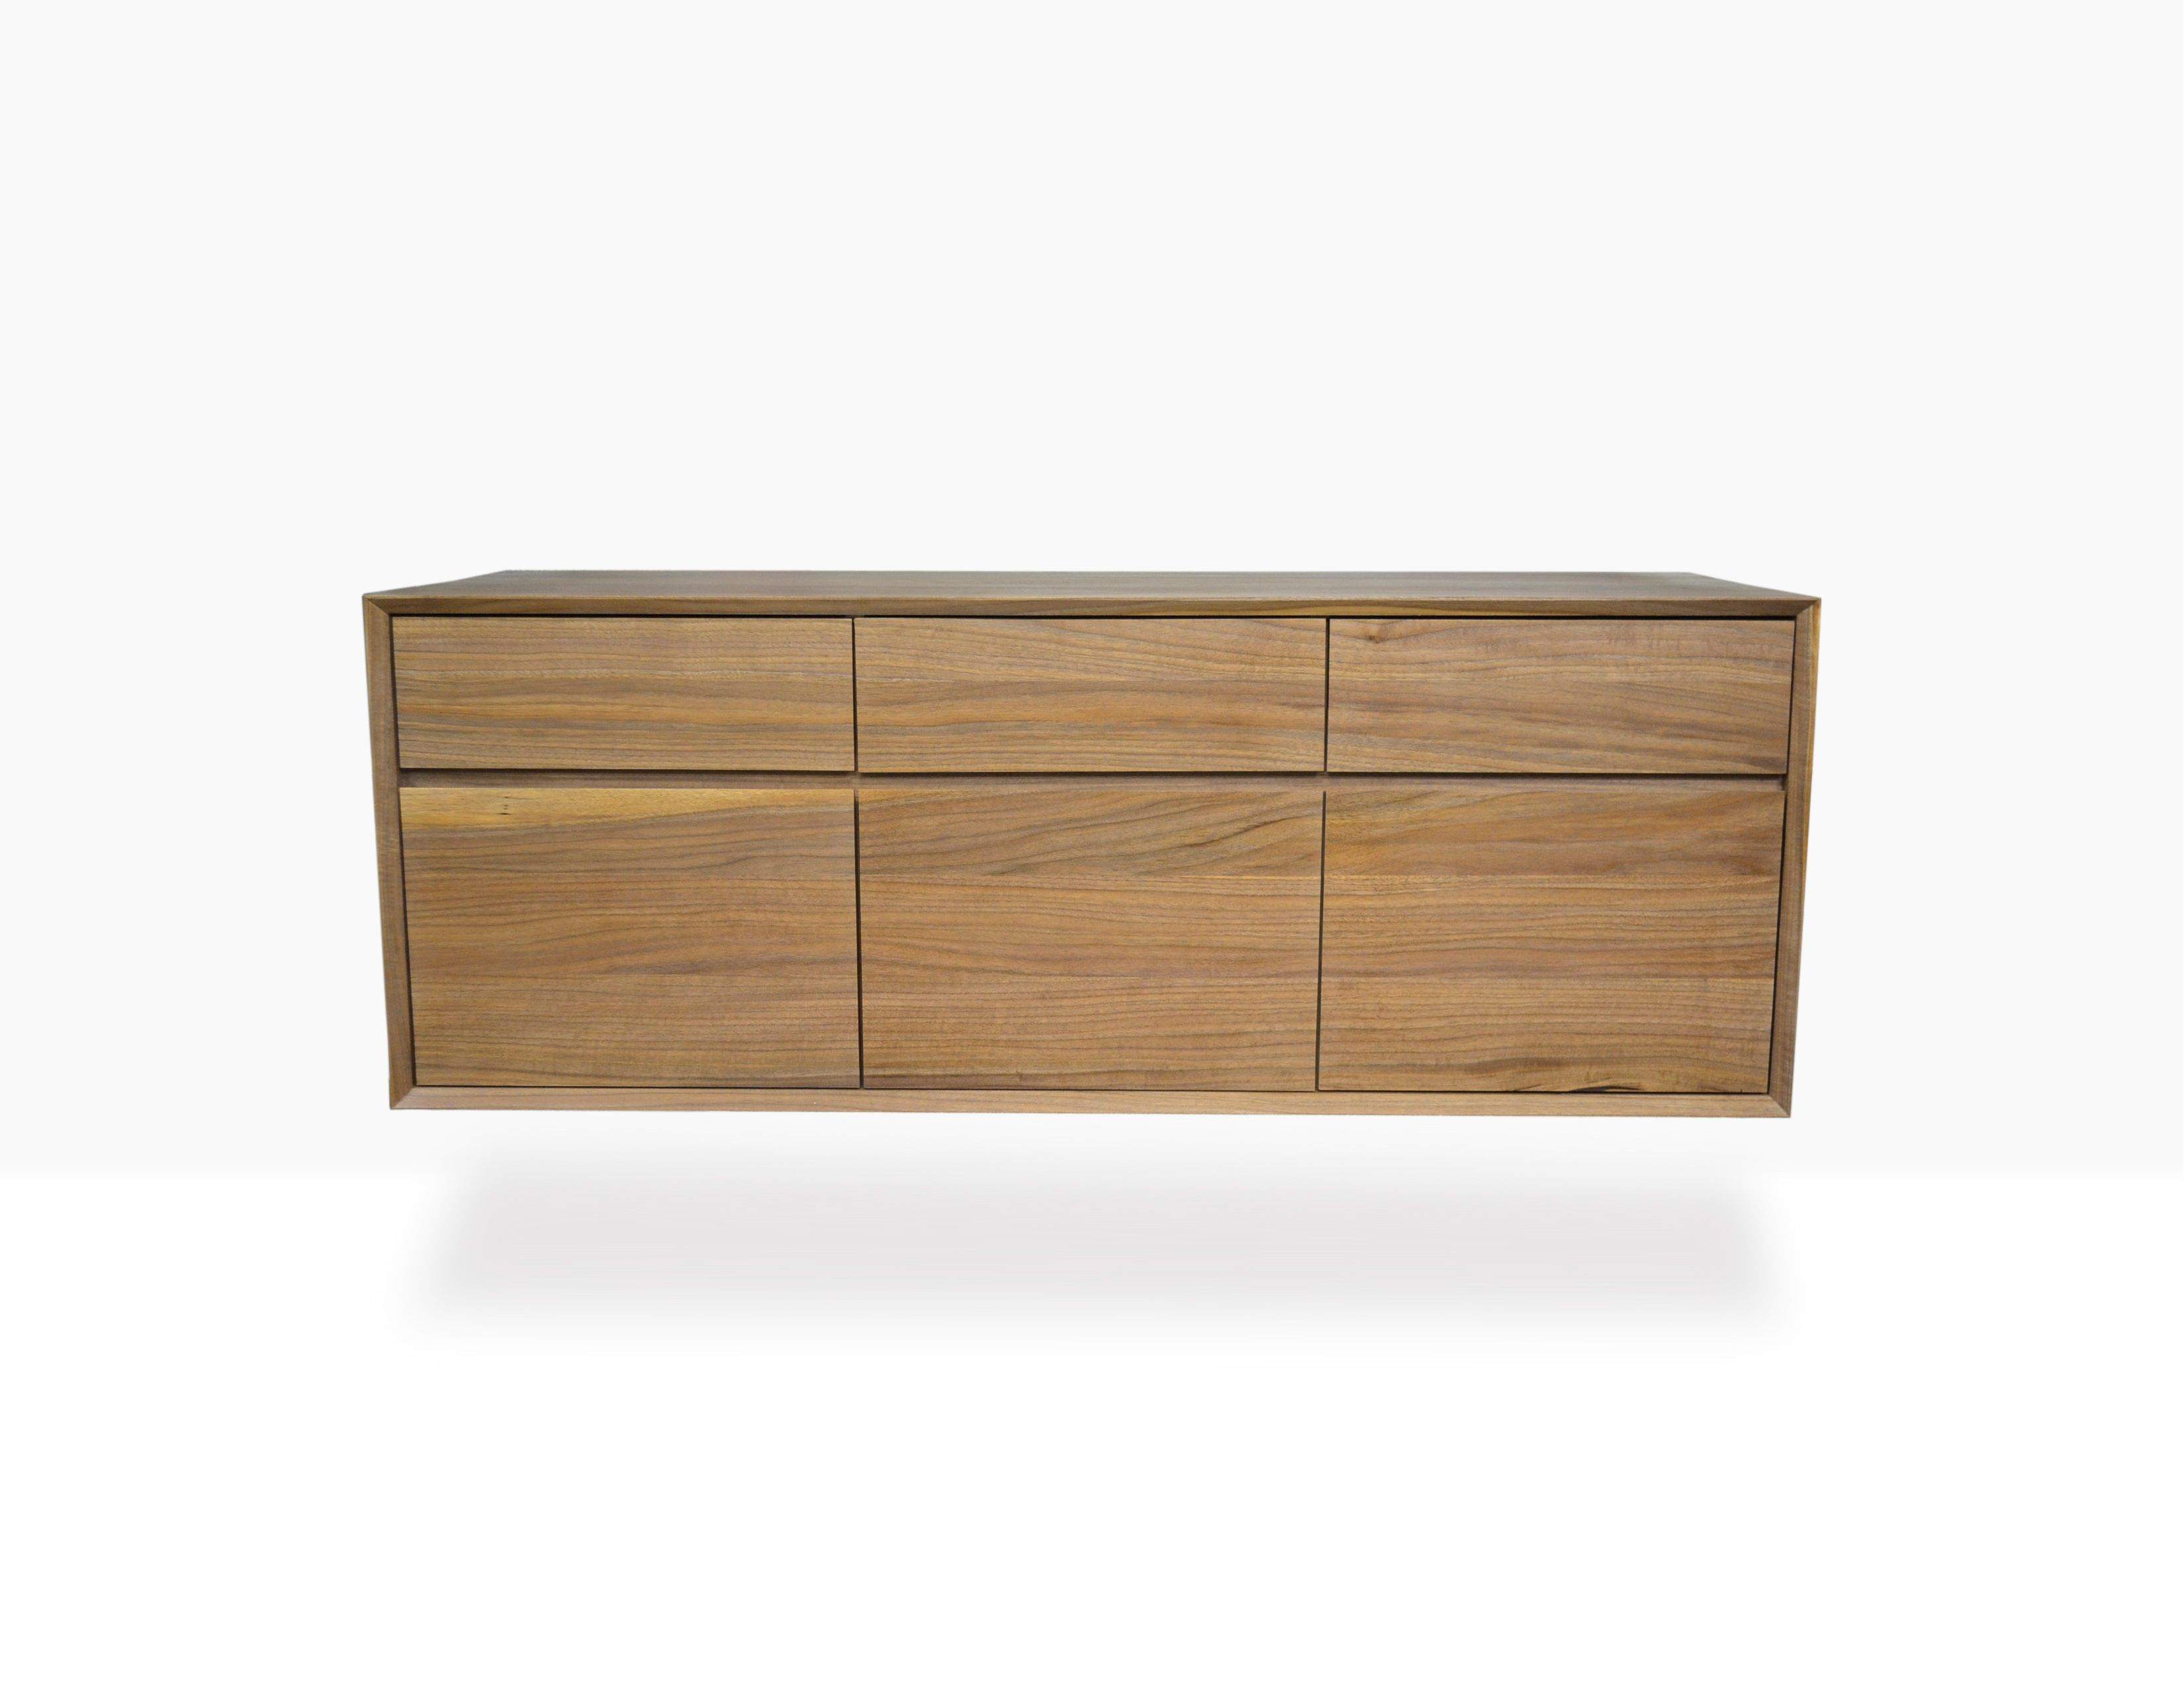 Hand Crafted Modern Floating Walnut Credenza by Blak Haus ... on hand carved buffet, dining room buffet sideboard, antique french sideboard, french style sideboard, pine sideboard, pennsylvania house sideboard, hand painted vintage sideboard cabinet oriental,